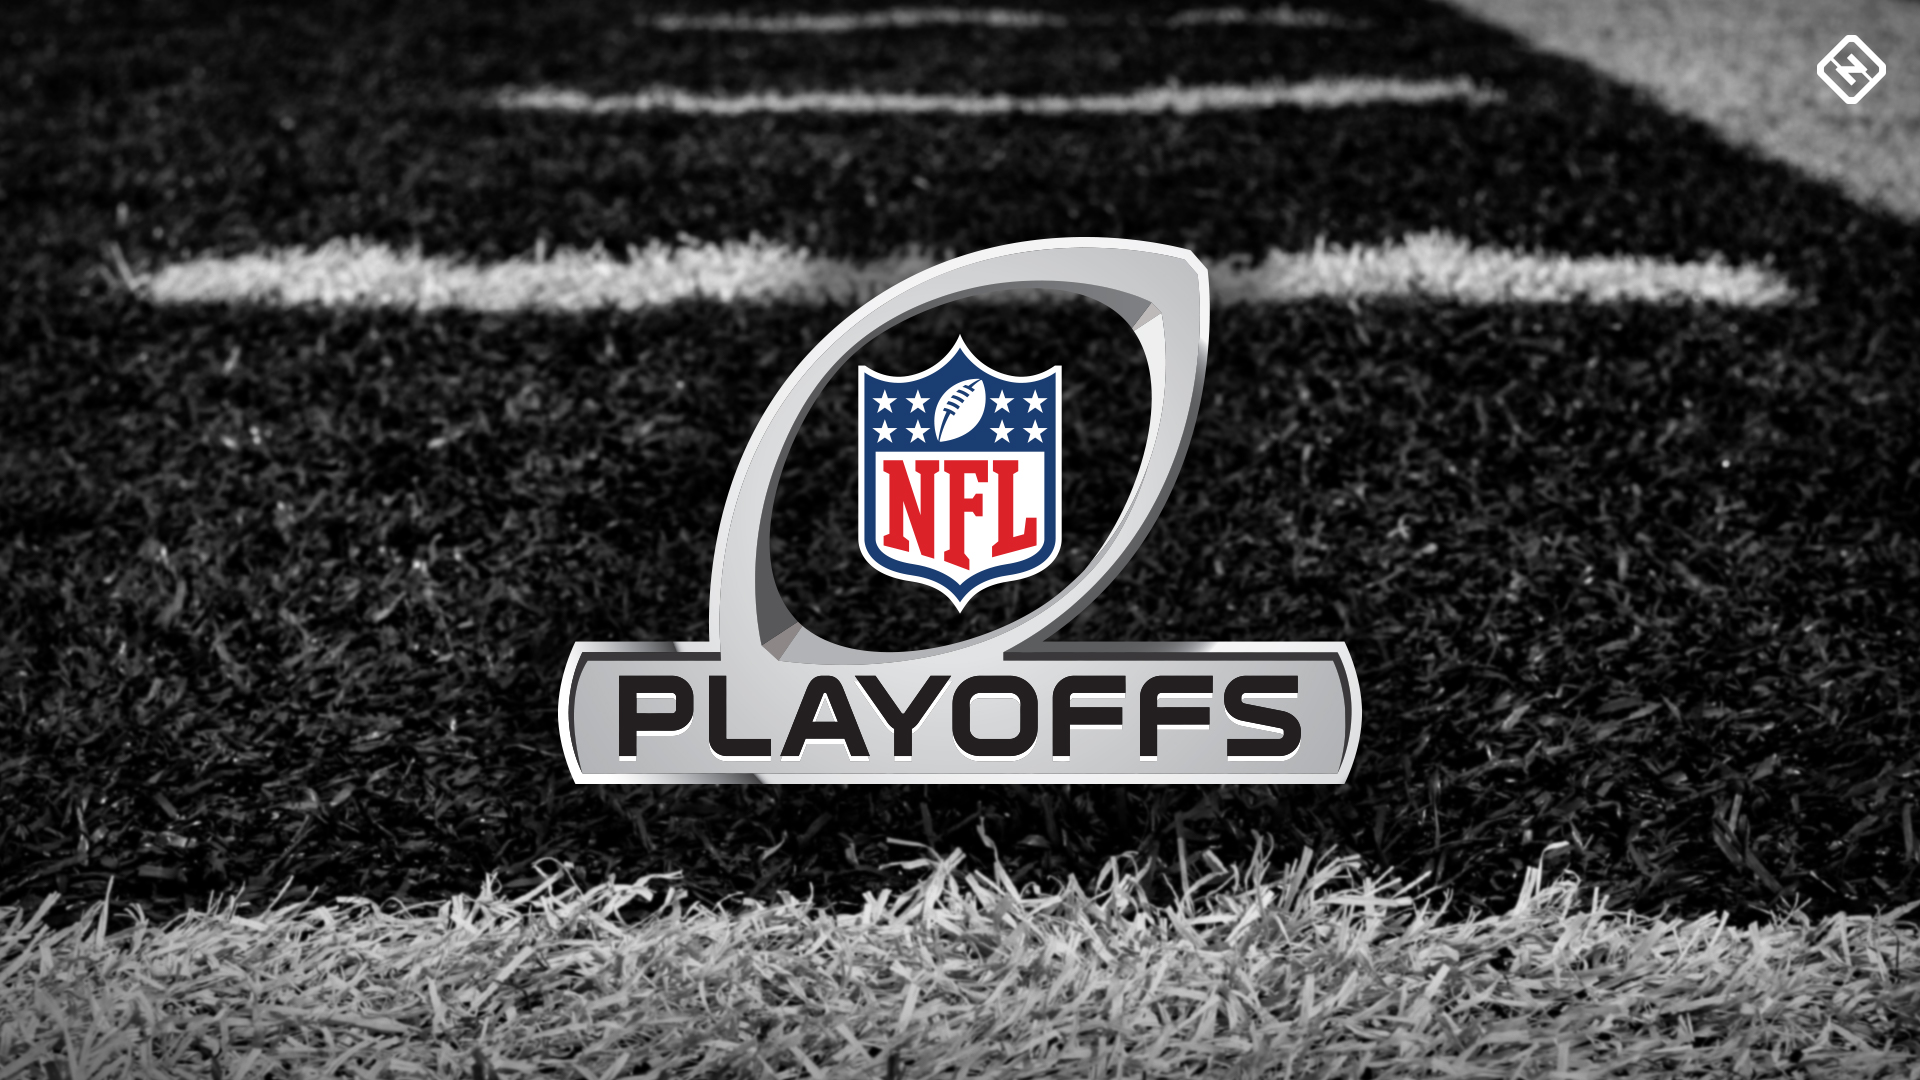 2021 NFL Playoff TV Schedule - Sports Games Today